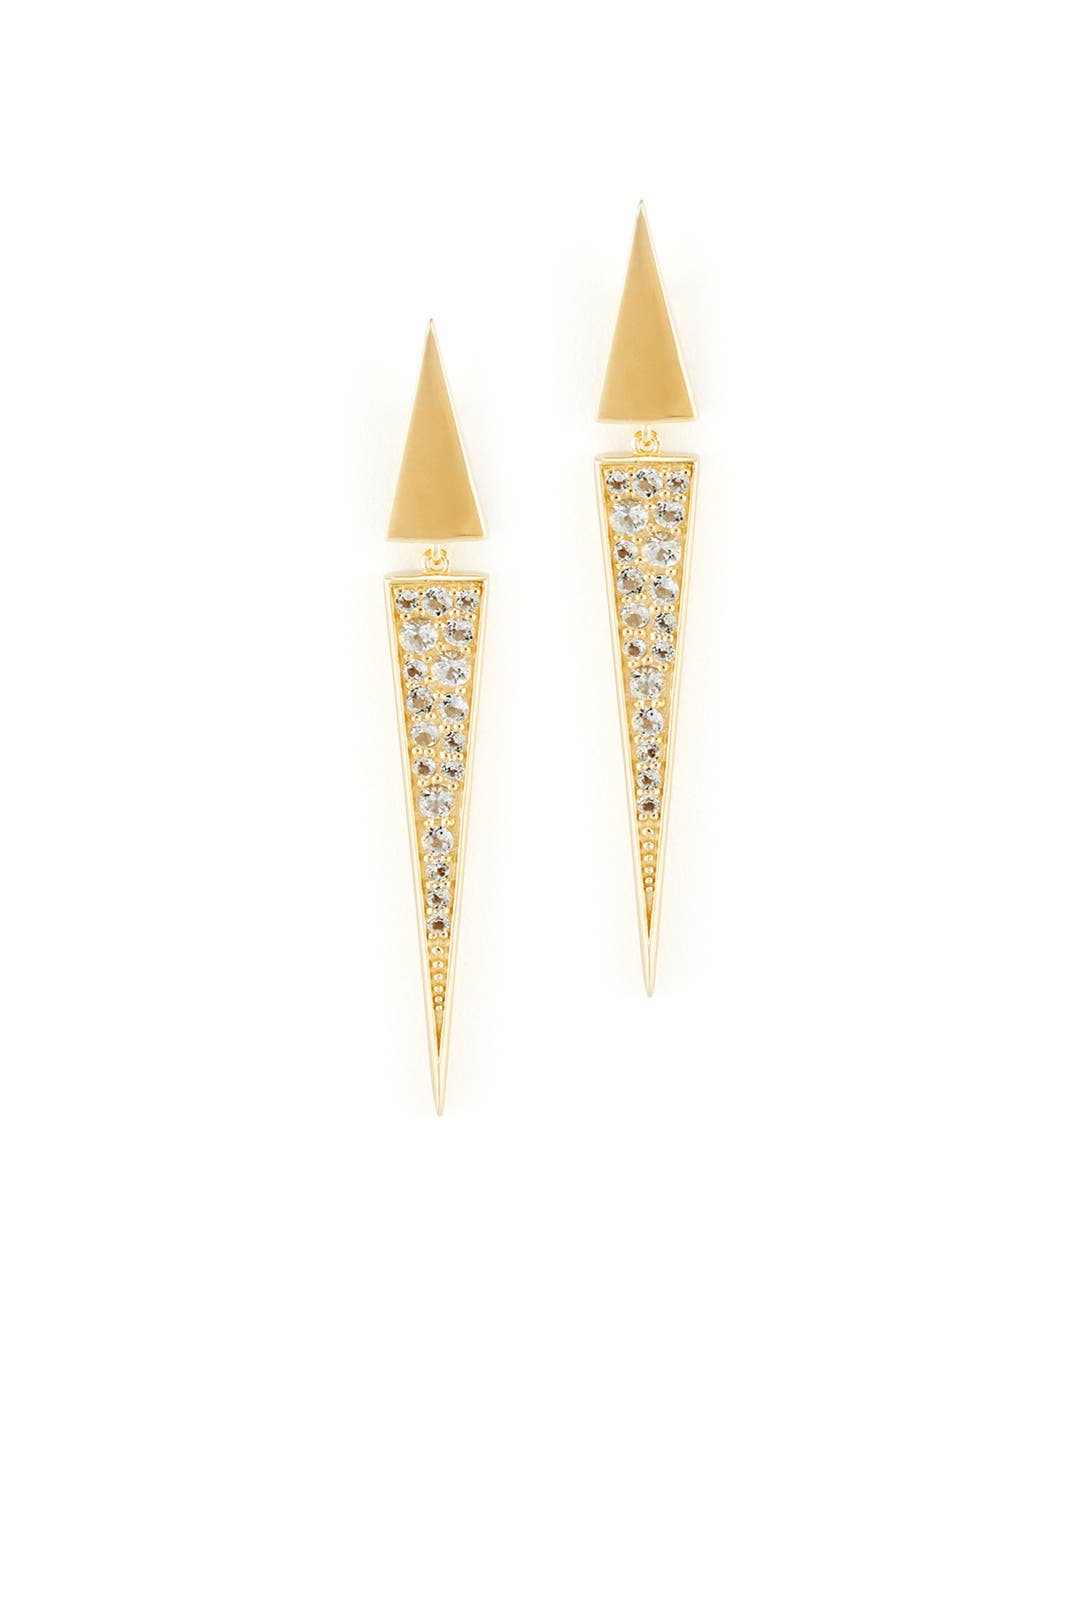 Itten Earrings By Elizabeth And James Accessories For $35  Rent The Runway